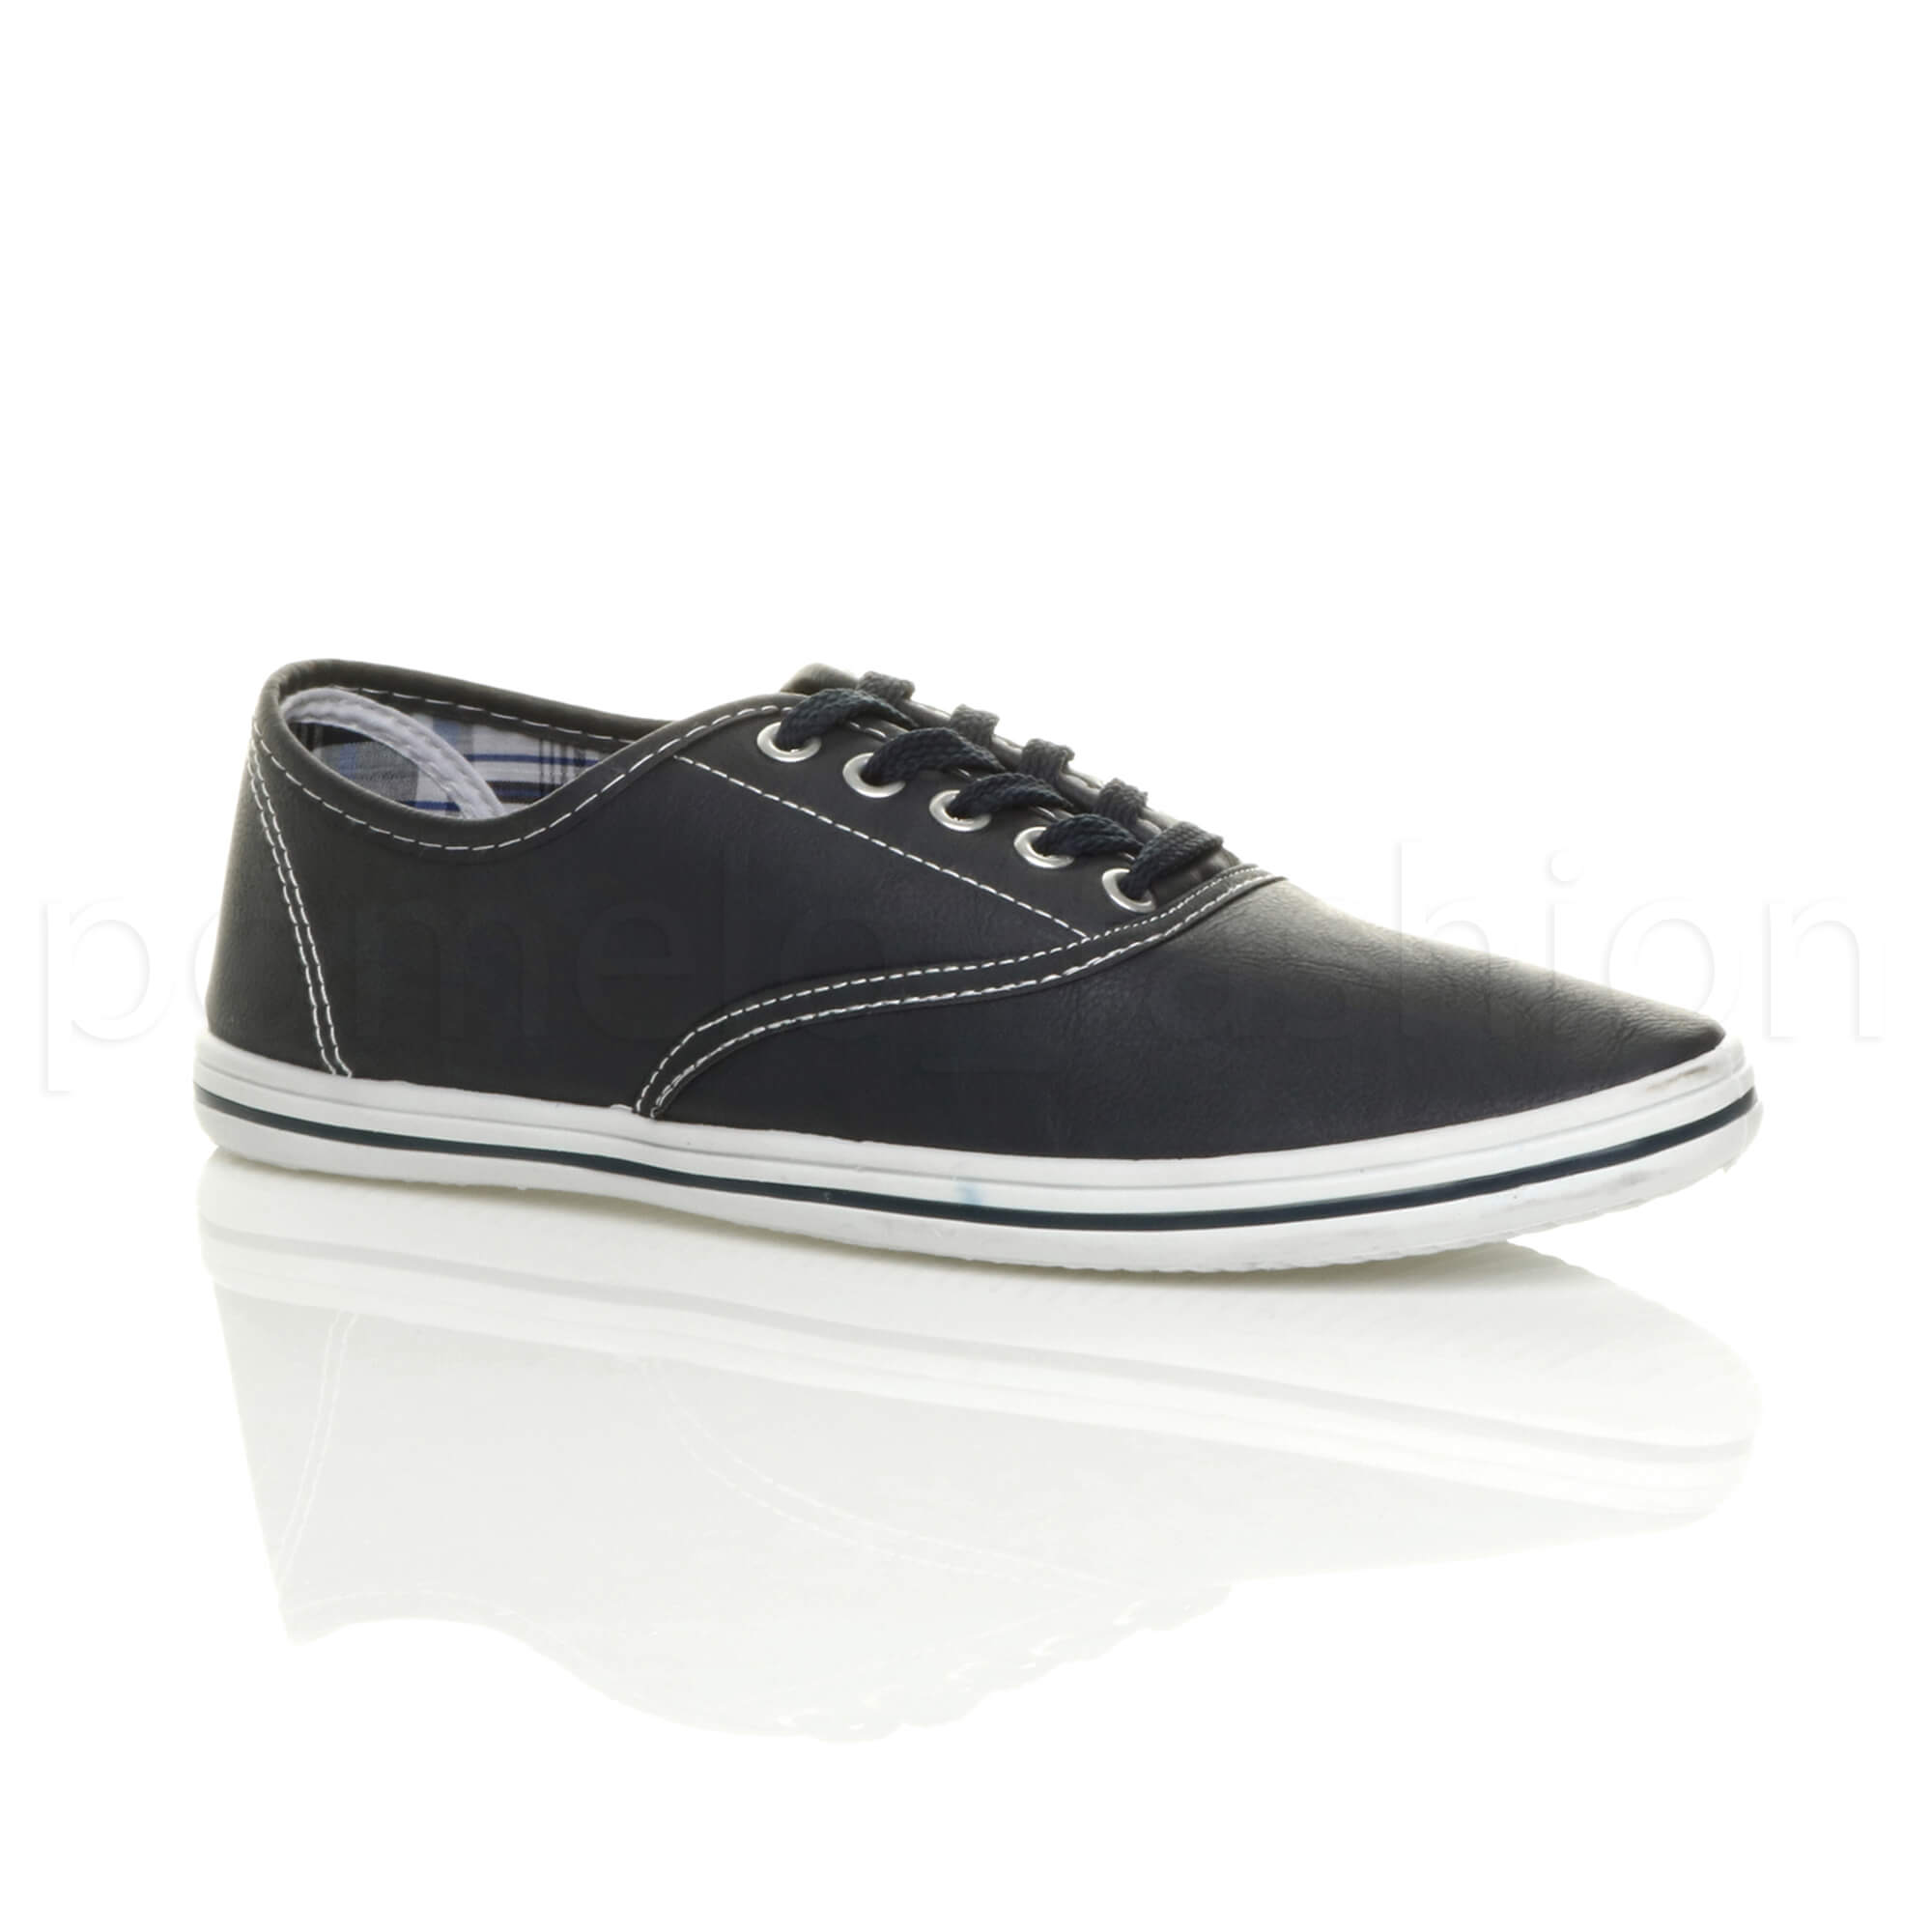 MENS FLAT CASUAL SMART LACE UP TRAINERS